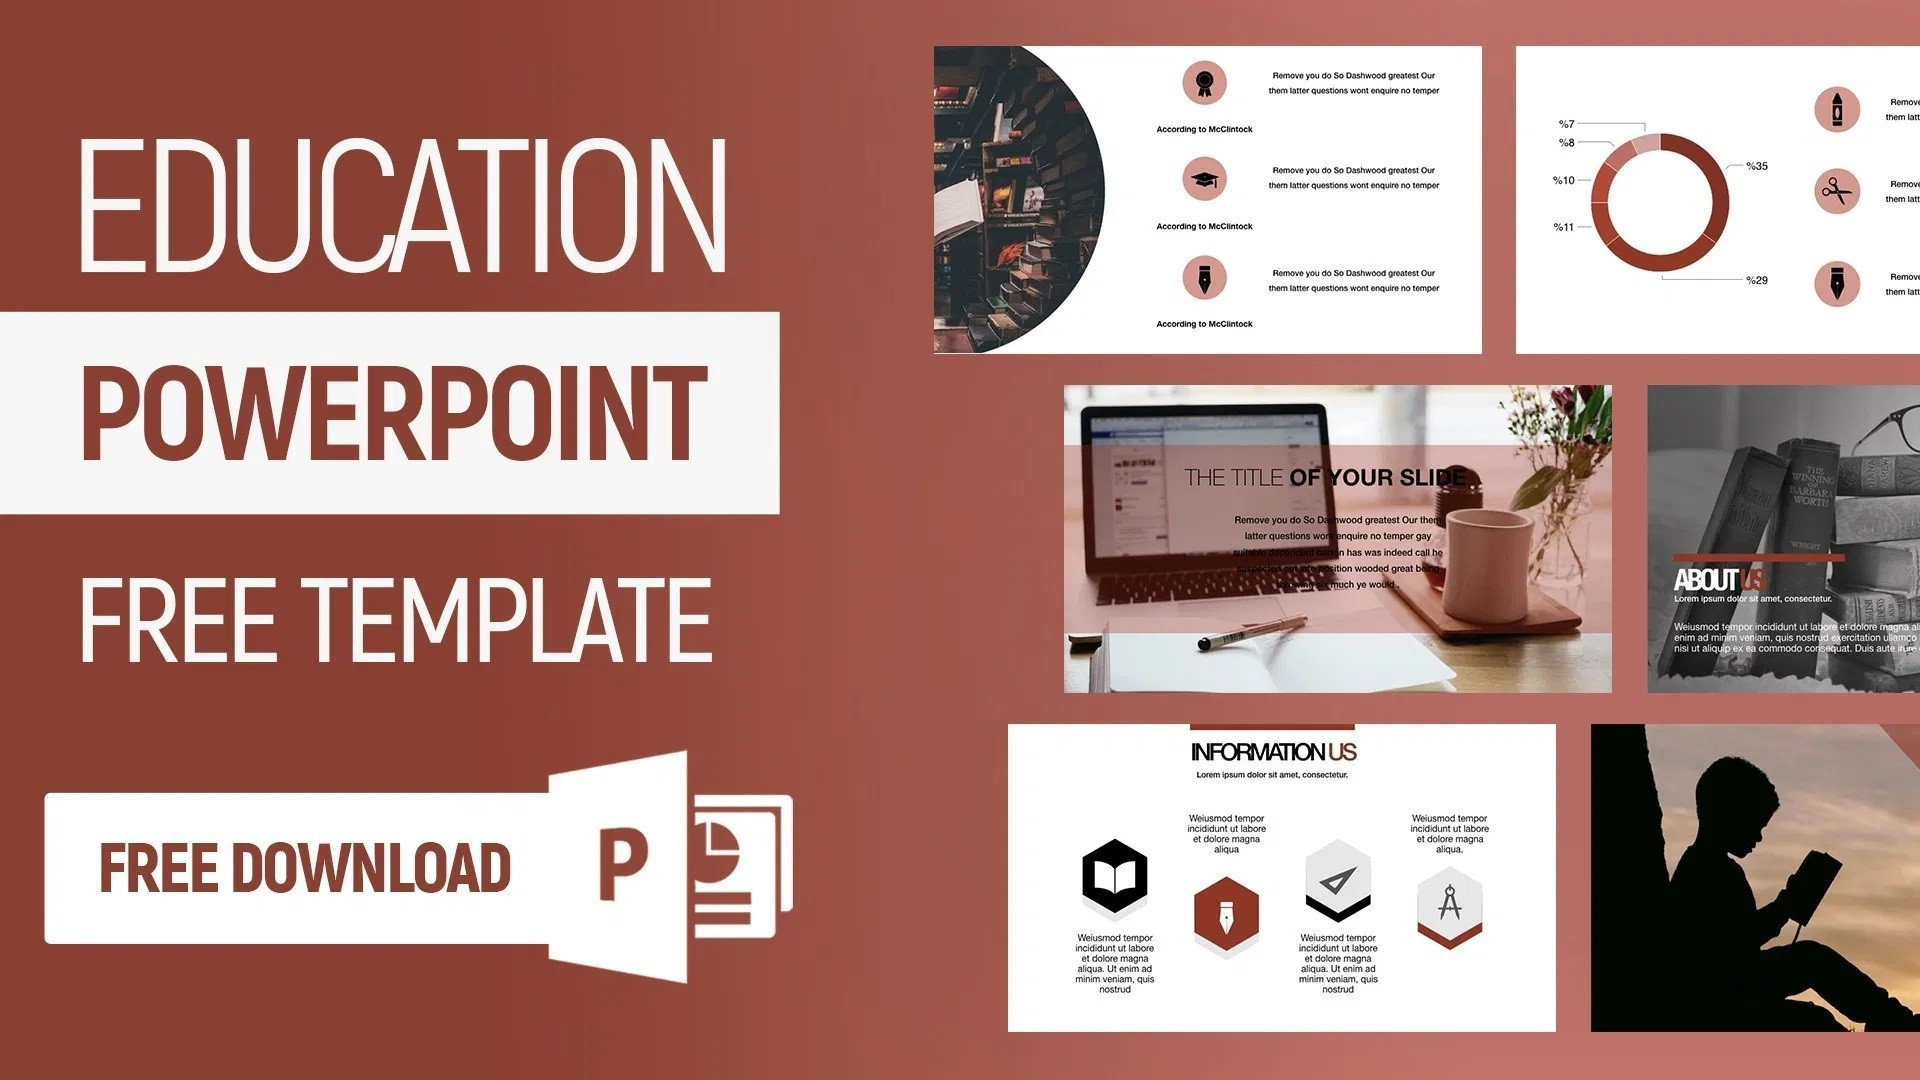 006 Top Powerpoint Template Free Education High Definition  Download Presentation Ppt1920